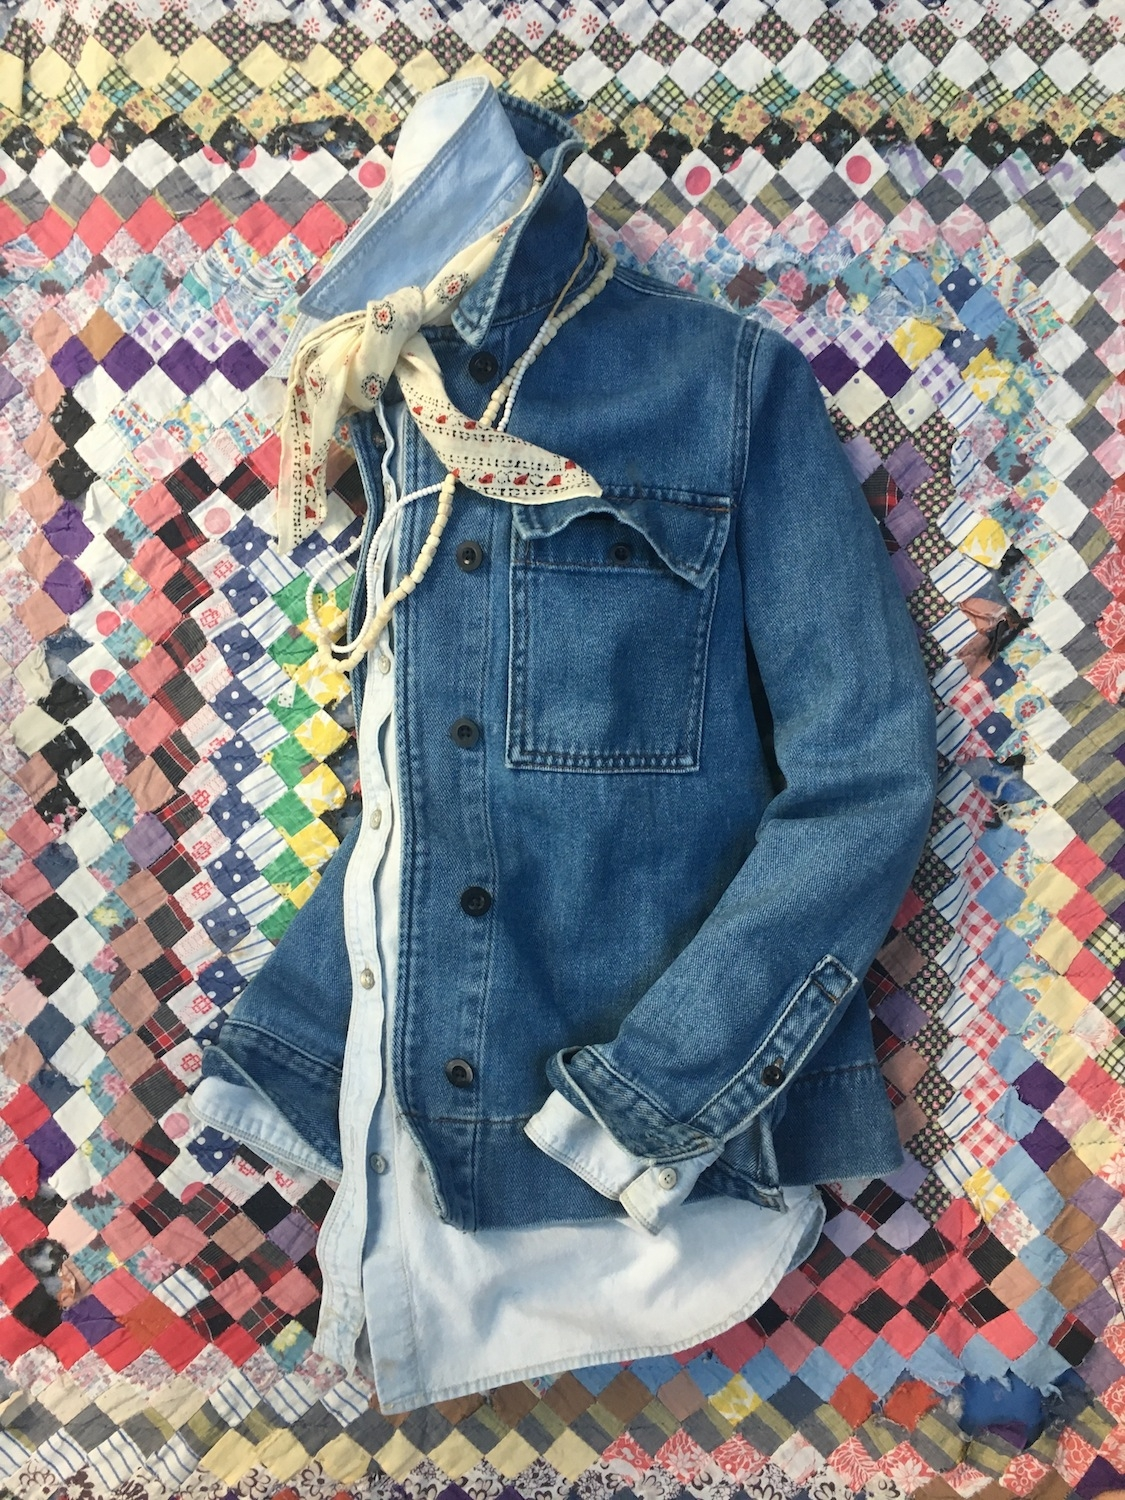 Quilt & Denim - Flat- Lay